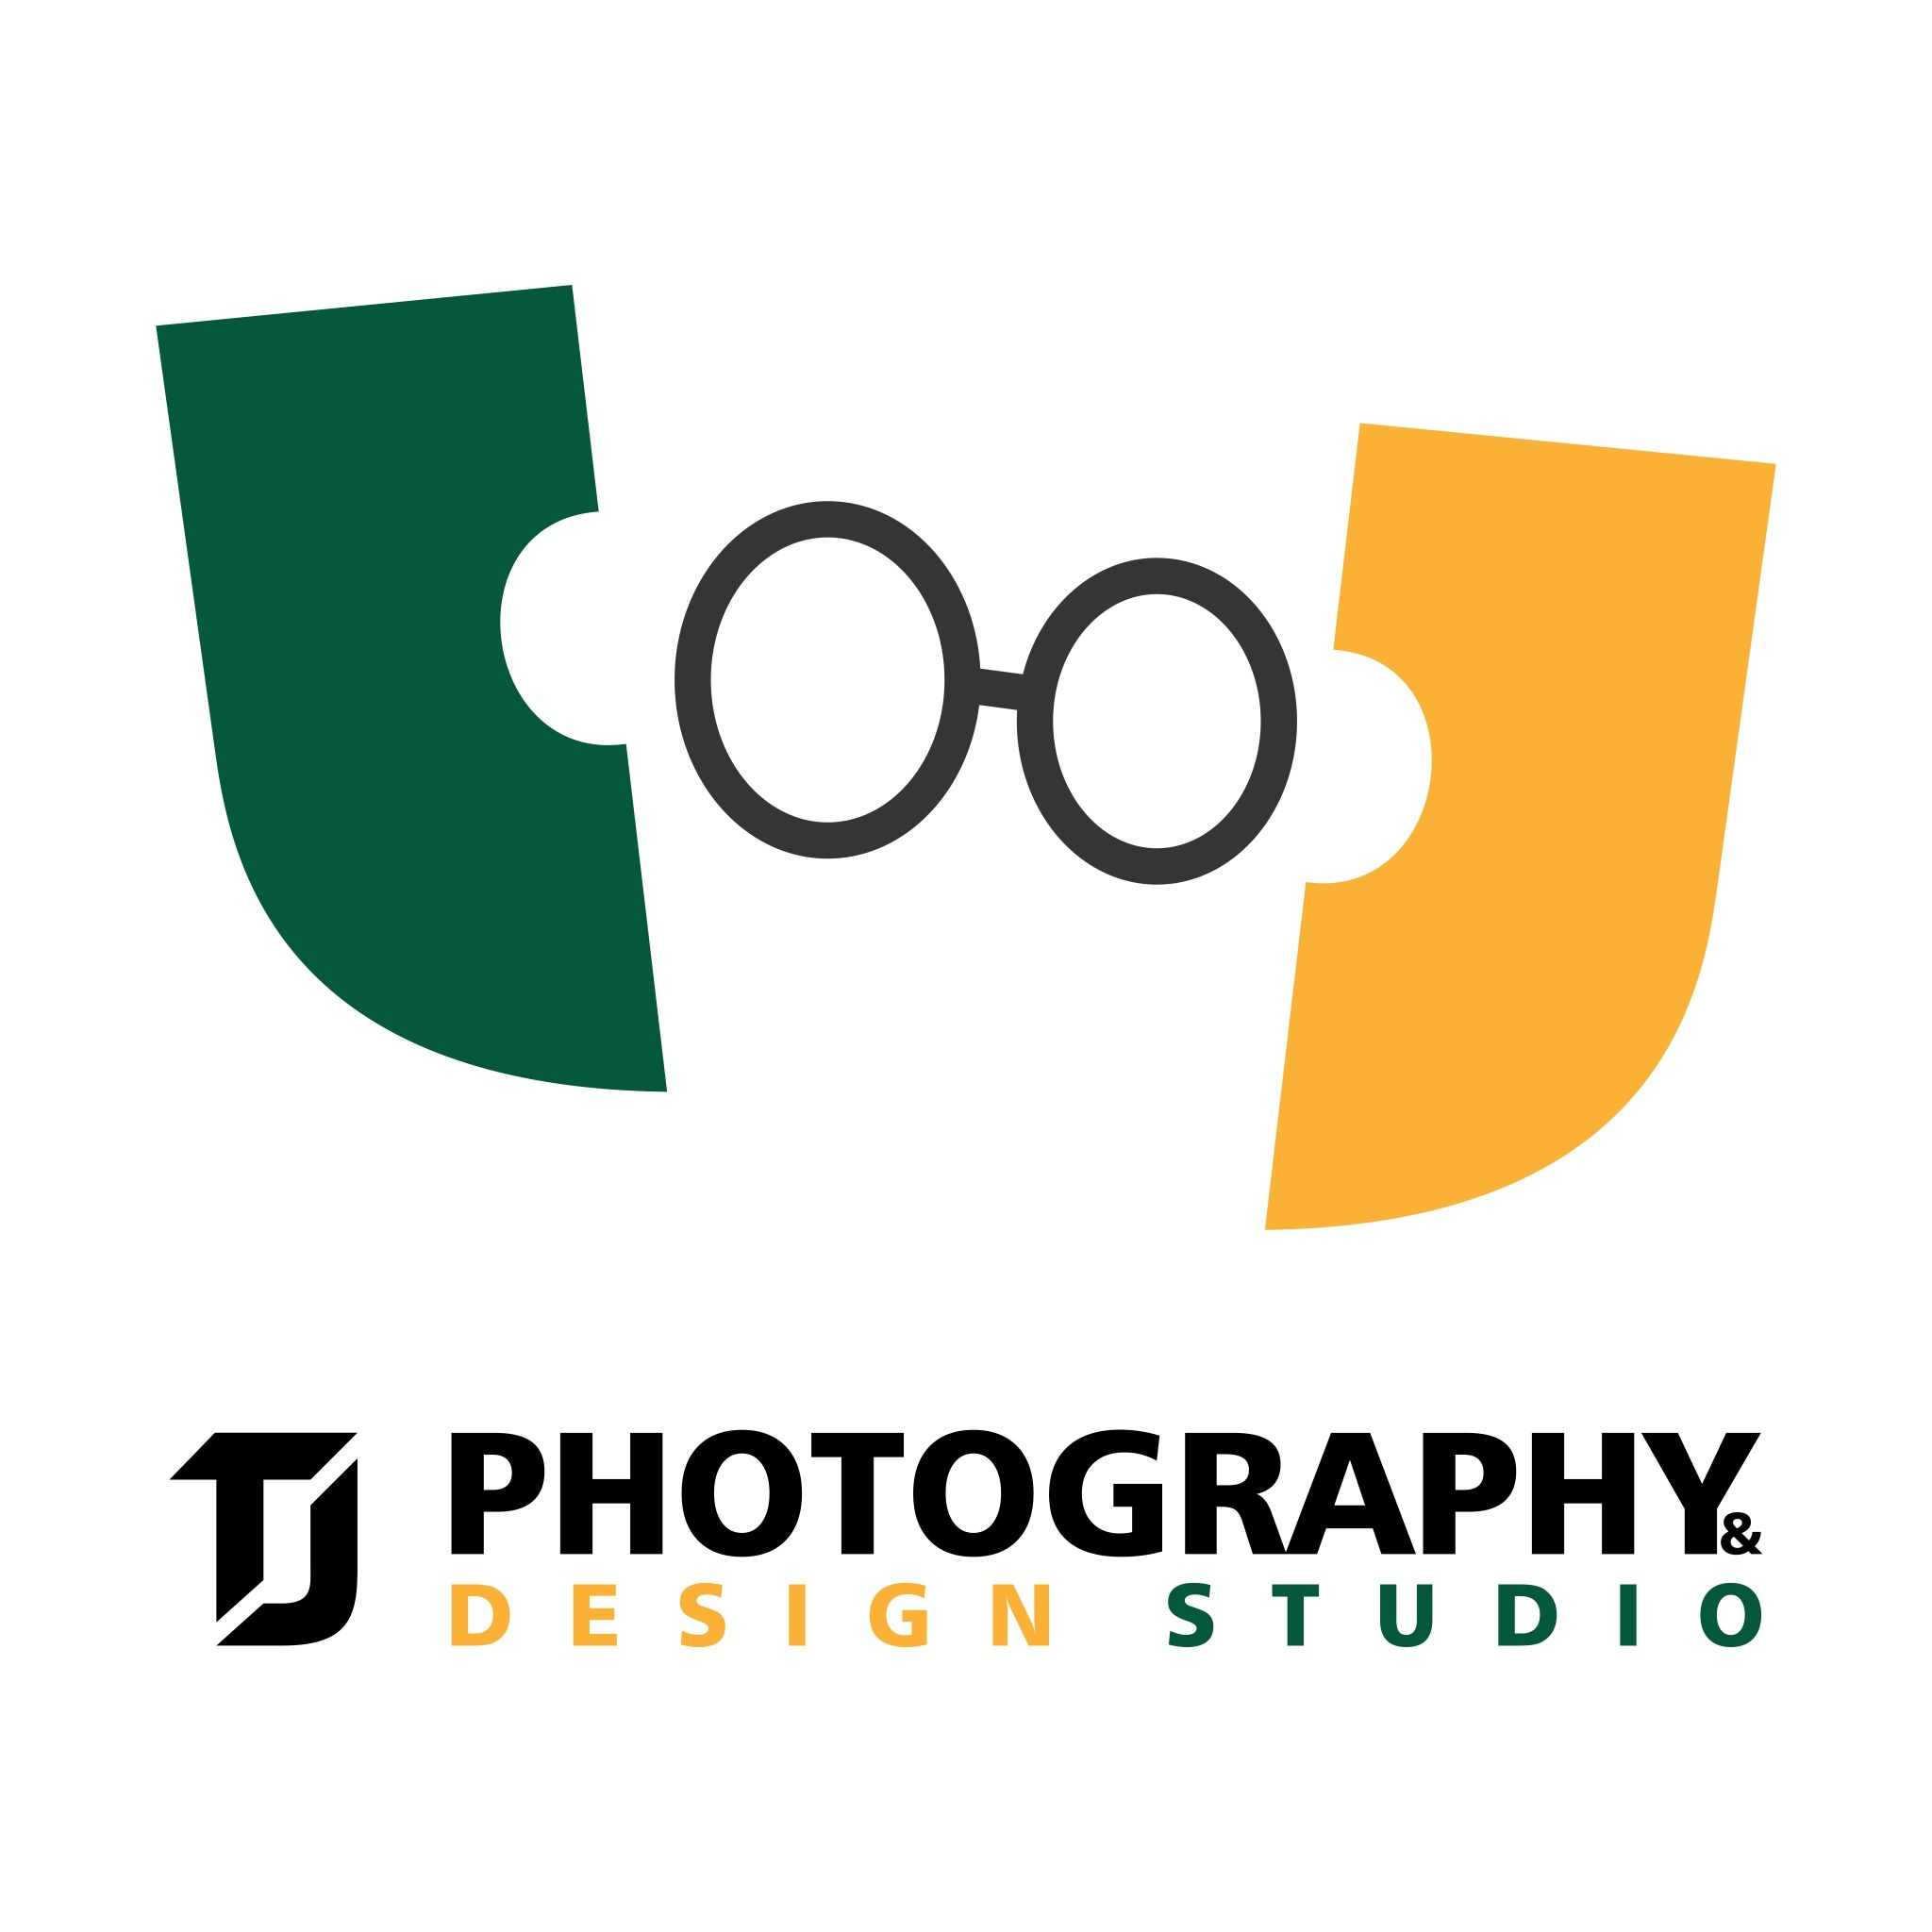 T J Photography and Design Studio